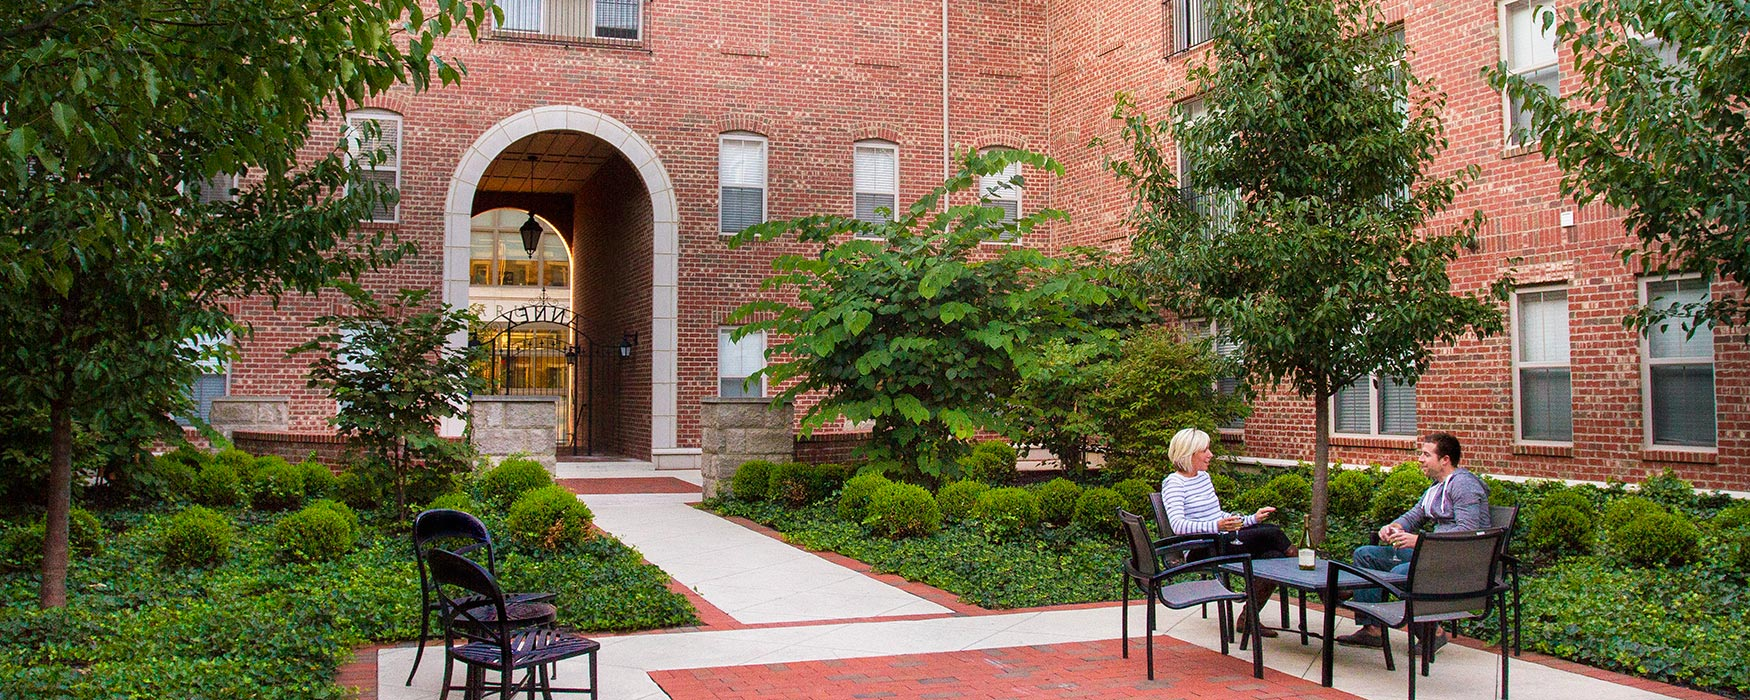 LC RiverSouth | Downtown Columbus Apartments | Courtyard